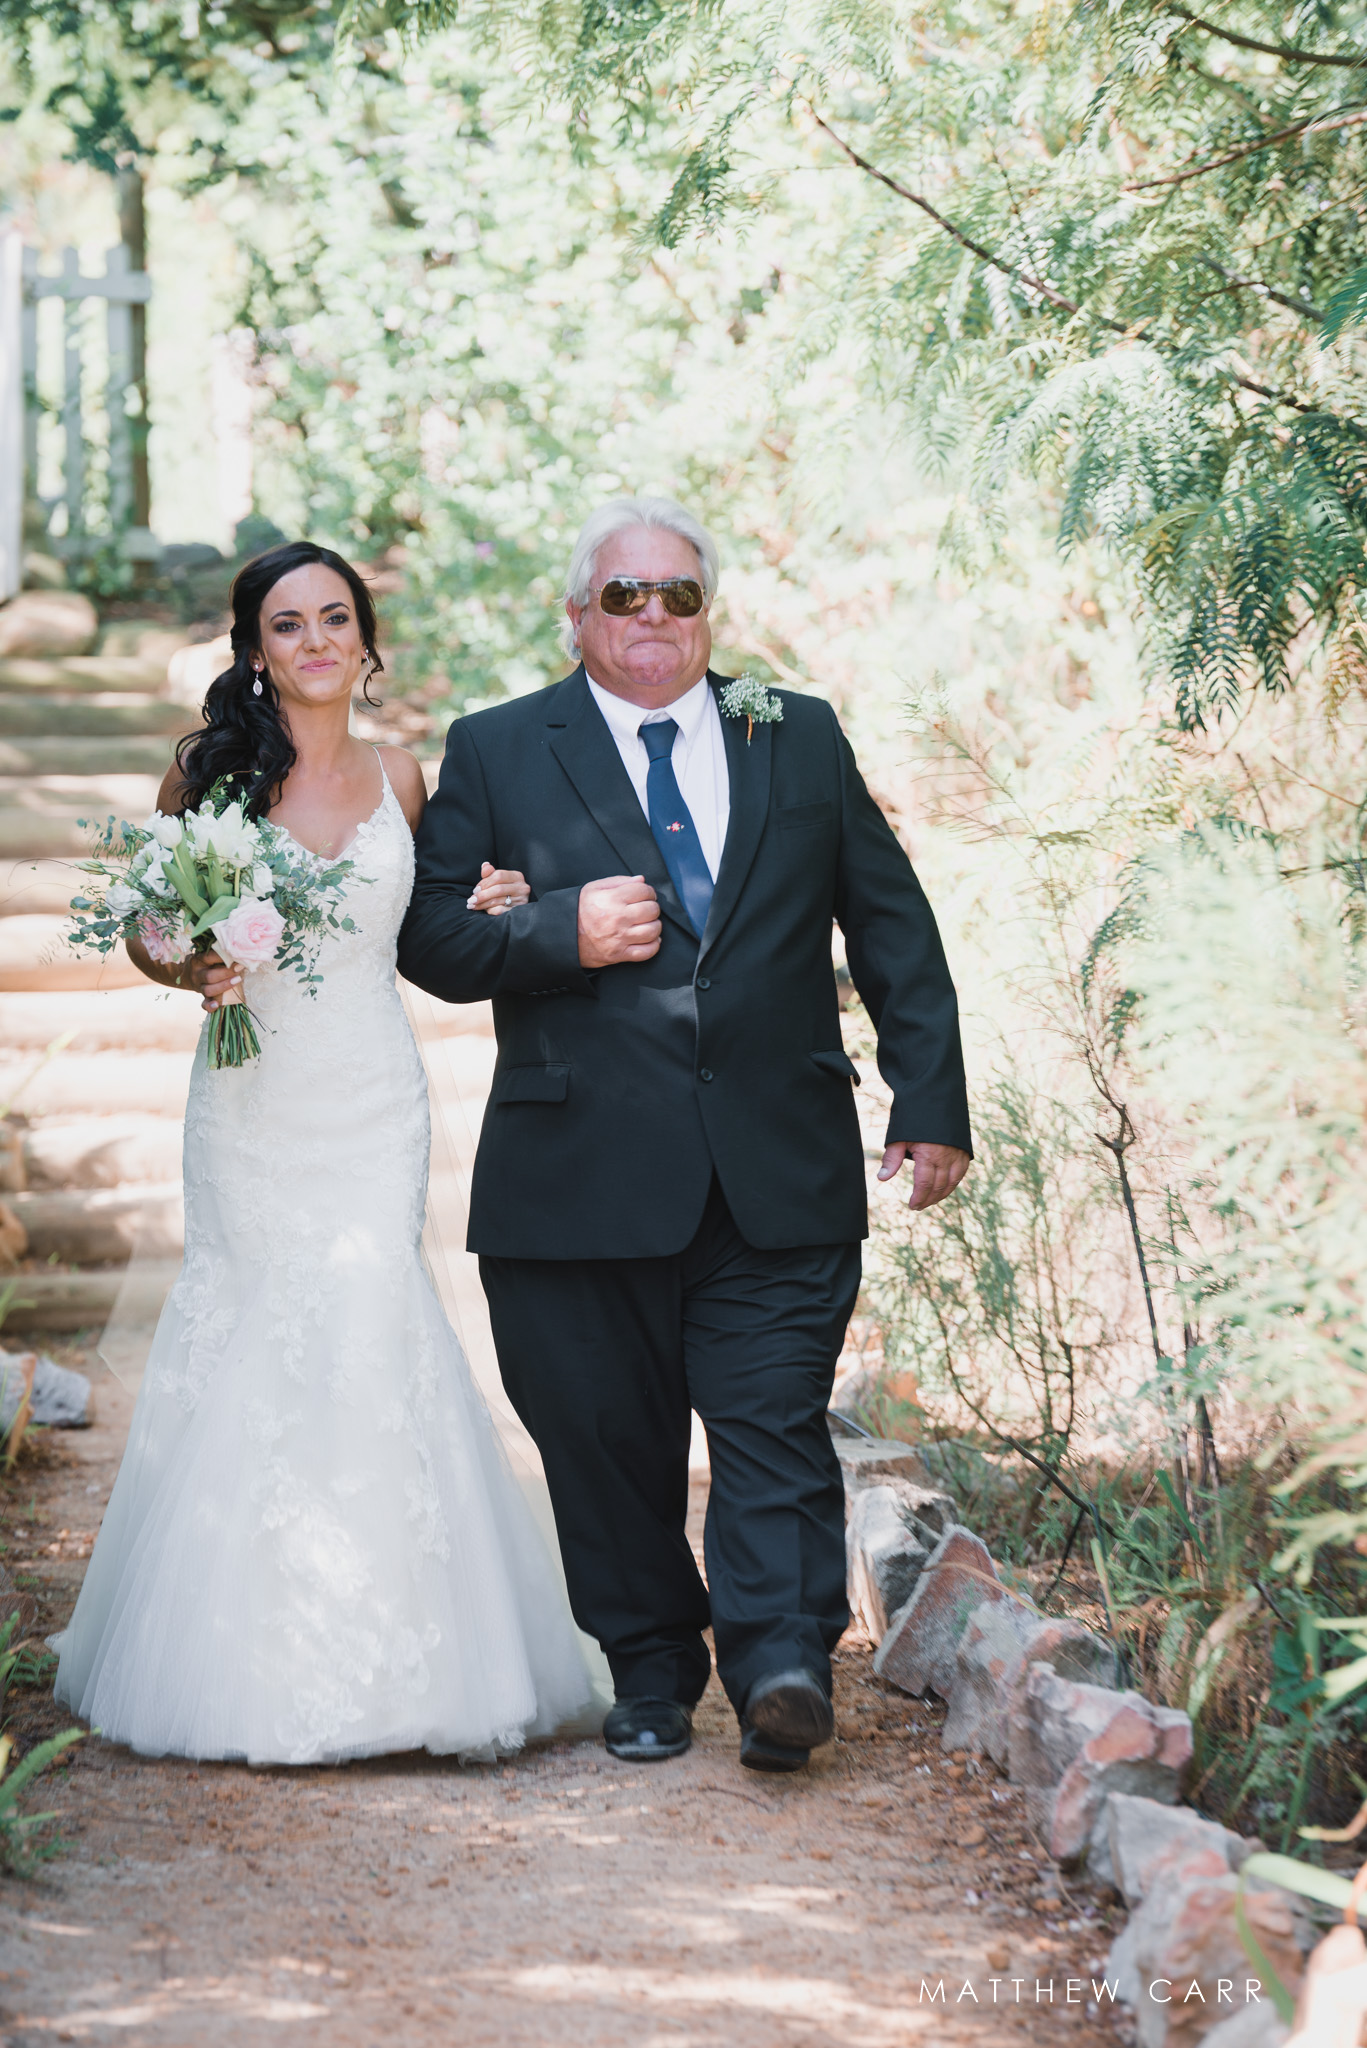 ceremony & after - low res (viewing, social media) (17 of 111).JPG